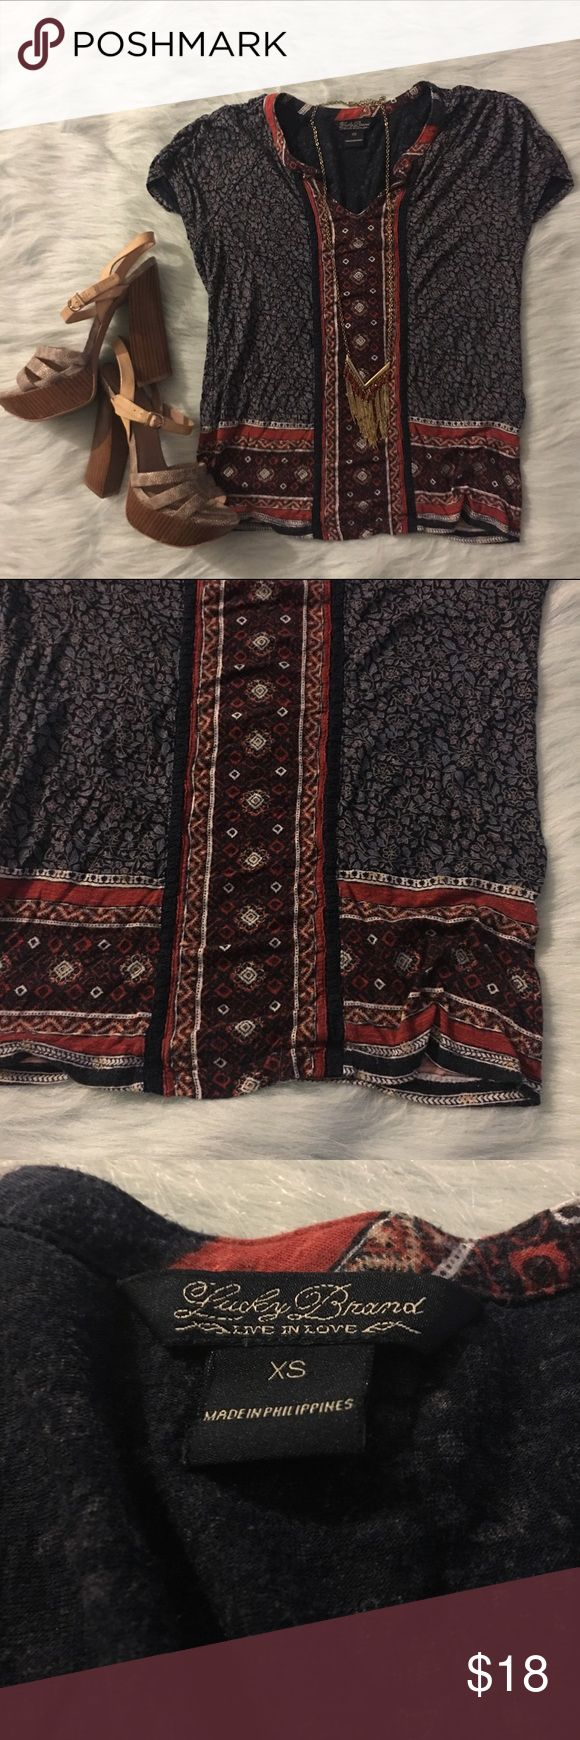 Lucky brand XS navy short sleeve floral tee Lucky brand size extra small, Floral tee. Top is in good condition. Lucky Brand Tops Tees - Short Sleeve